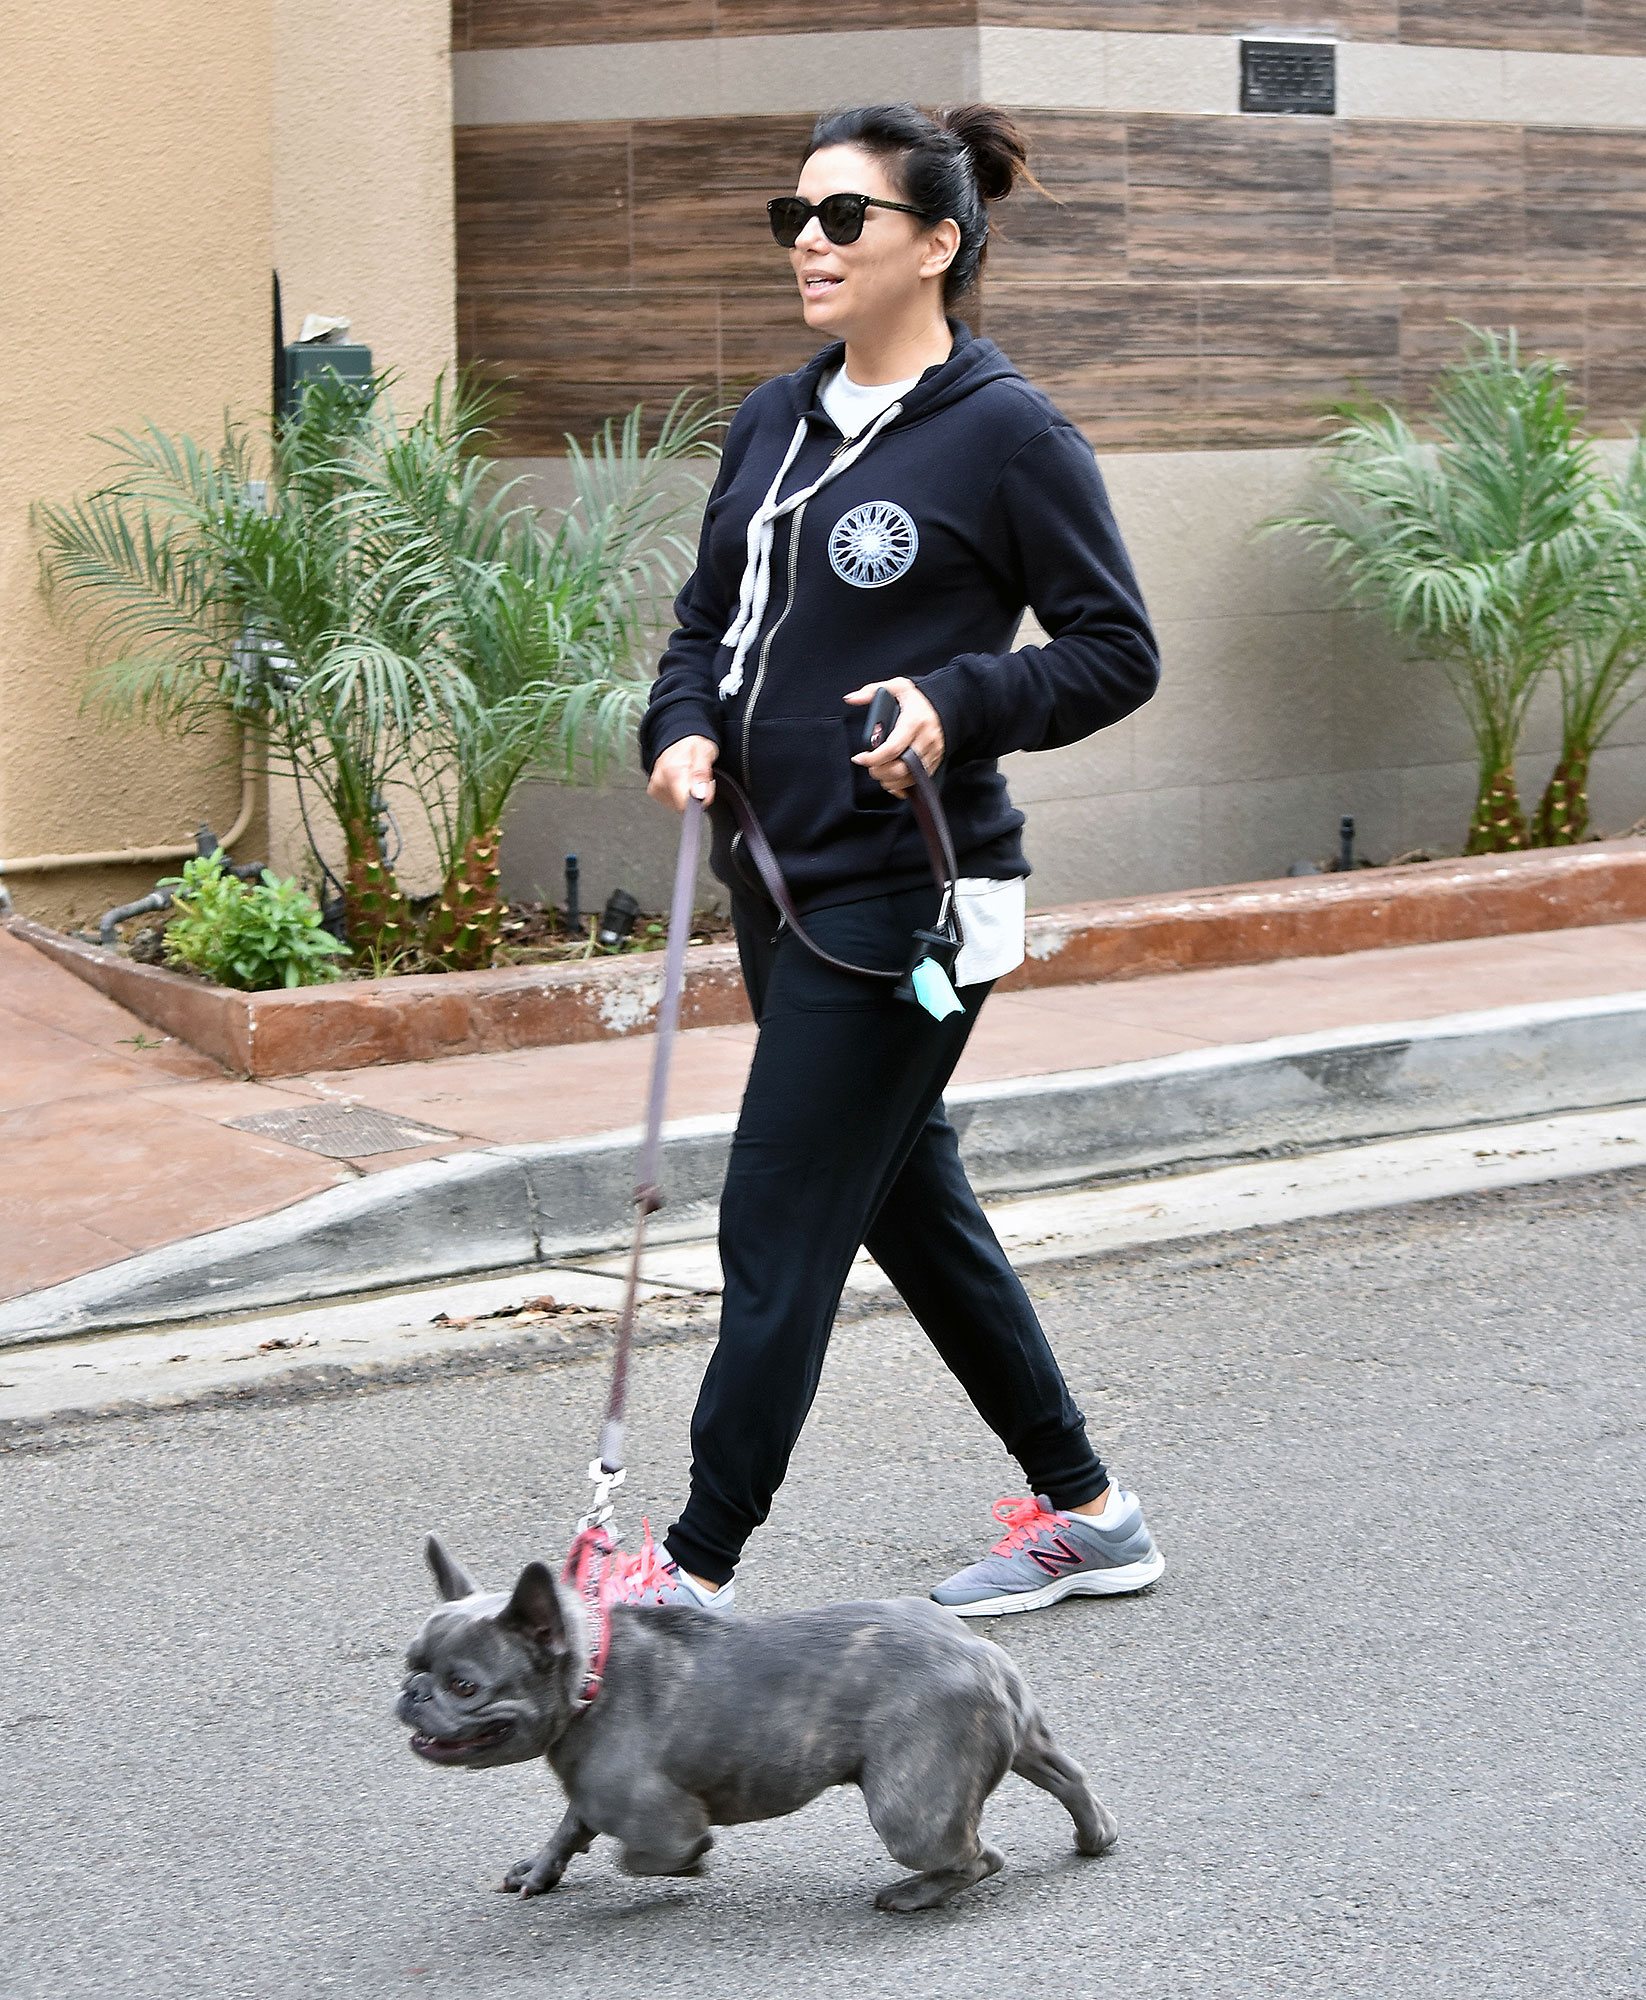 EXCLUSIVE: Pregnant Eva Longoria takes her pooch for an early morning walk in Los Angeles.